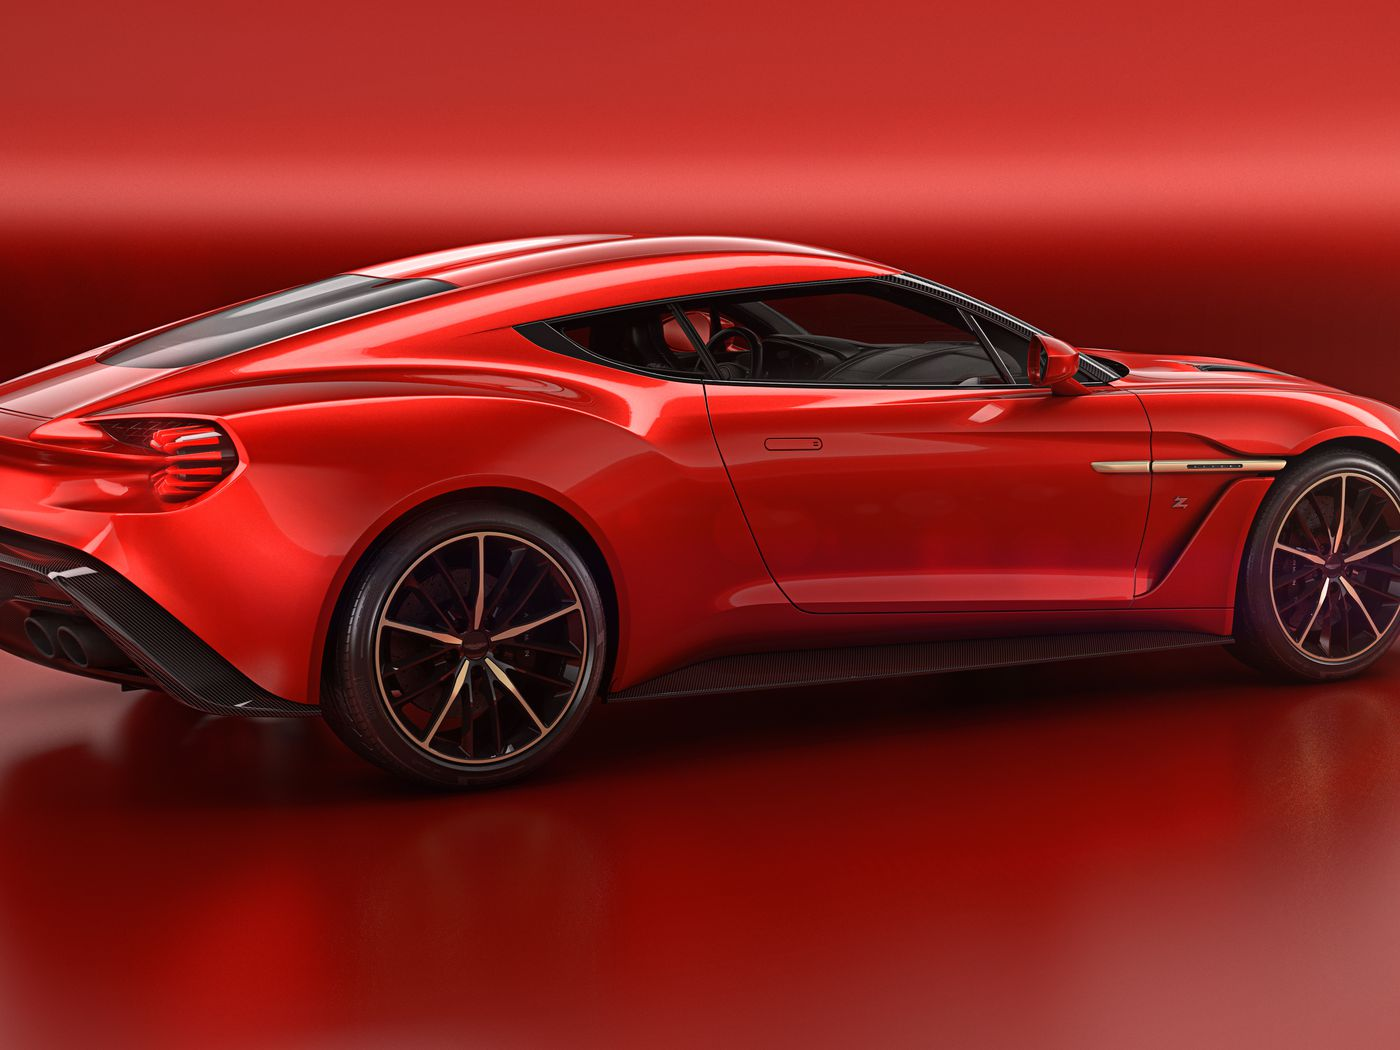 Aston Martin S Most Beautiful Car In Years Is The Vanquish Zagato The Verge